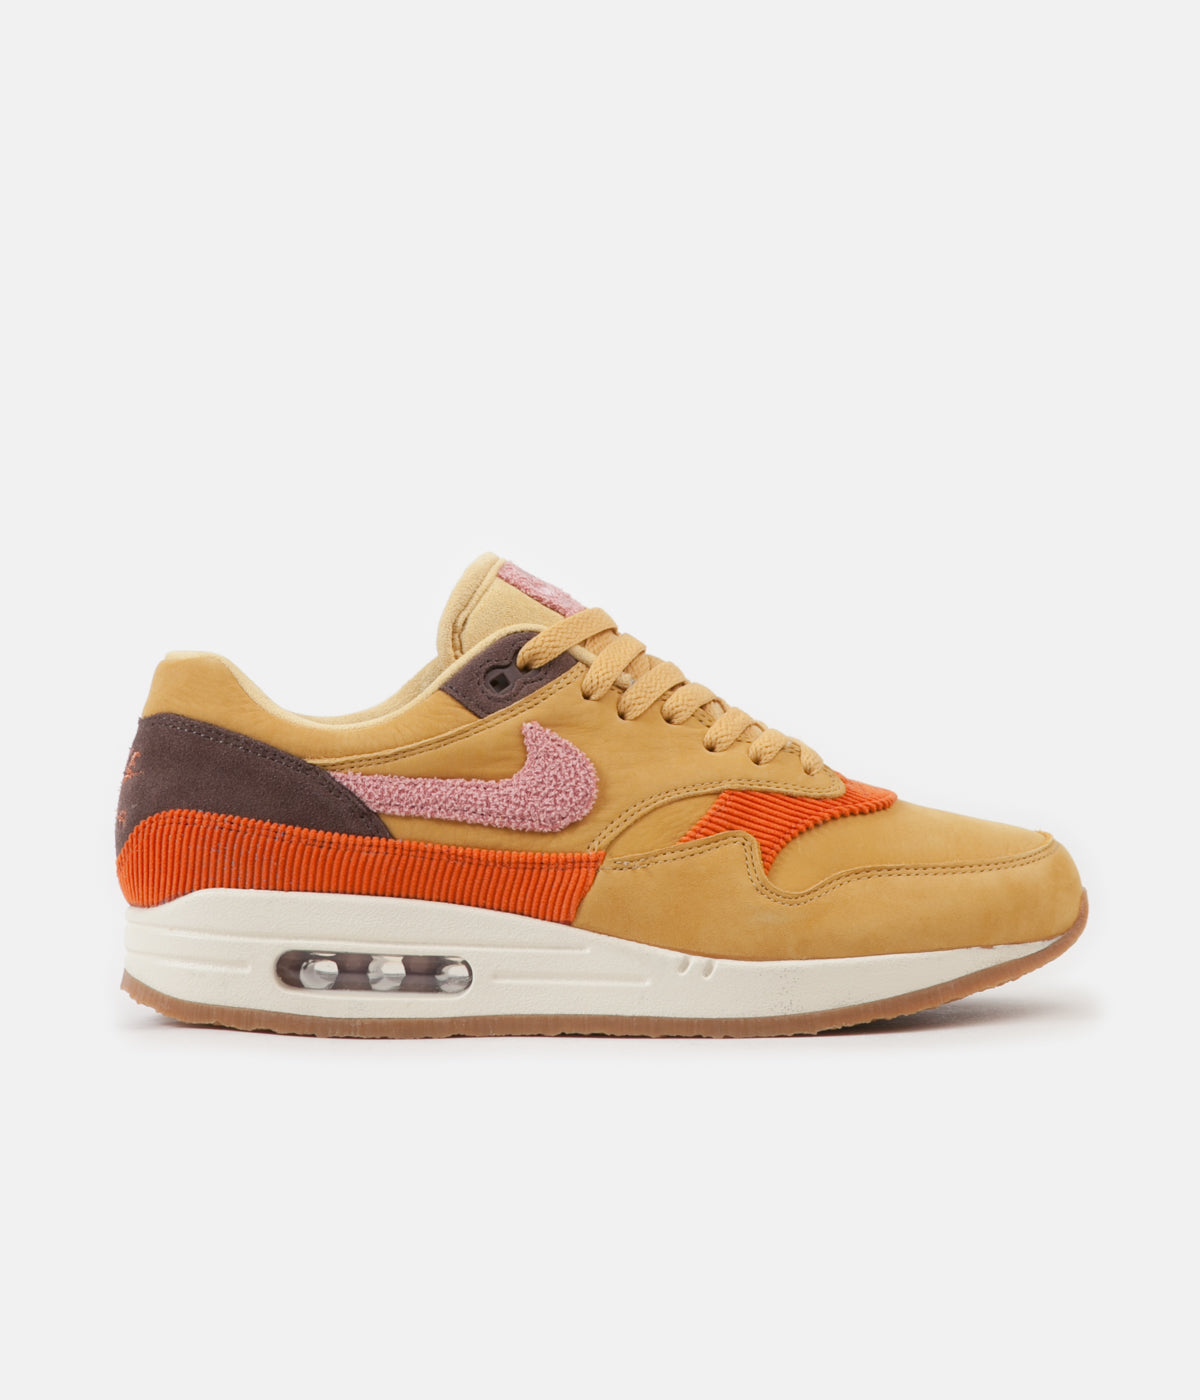 new product c6ef1 ffb81 ... Nike Air Max 1 Shoes - Wheat Gold  Rust Pink - Baroque Brown ...